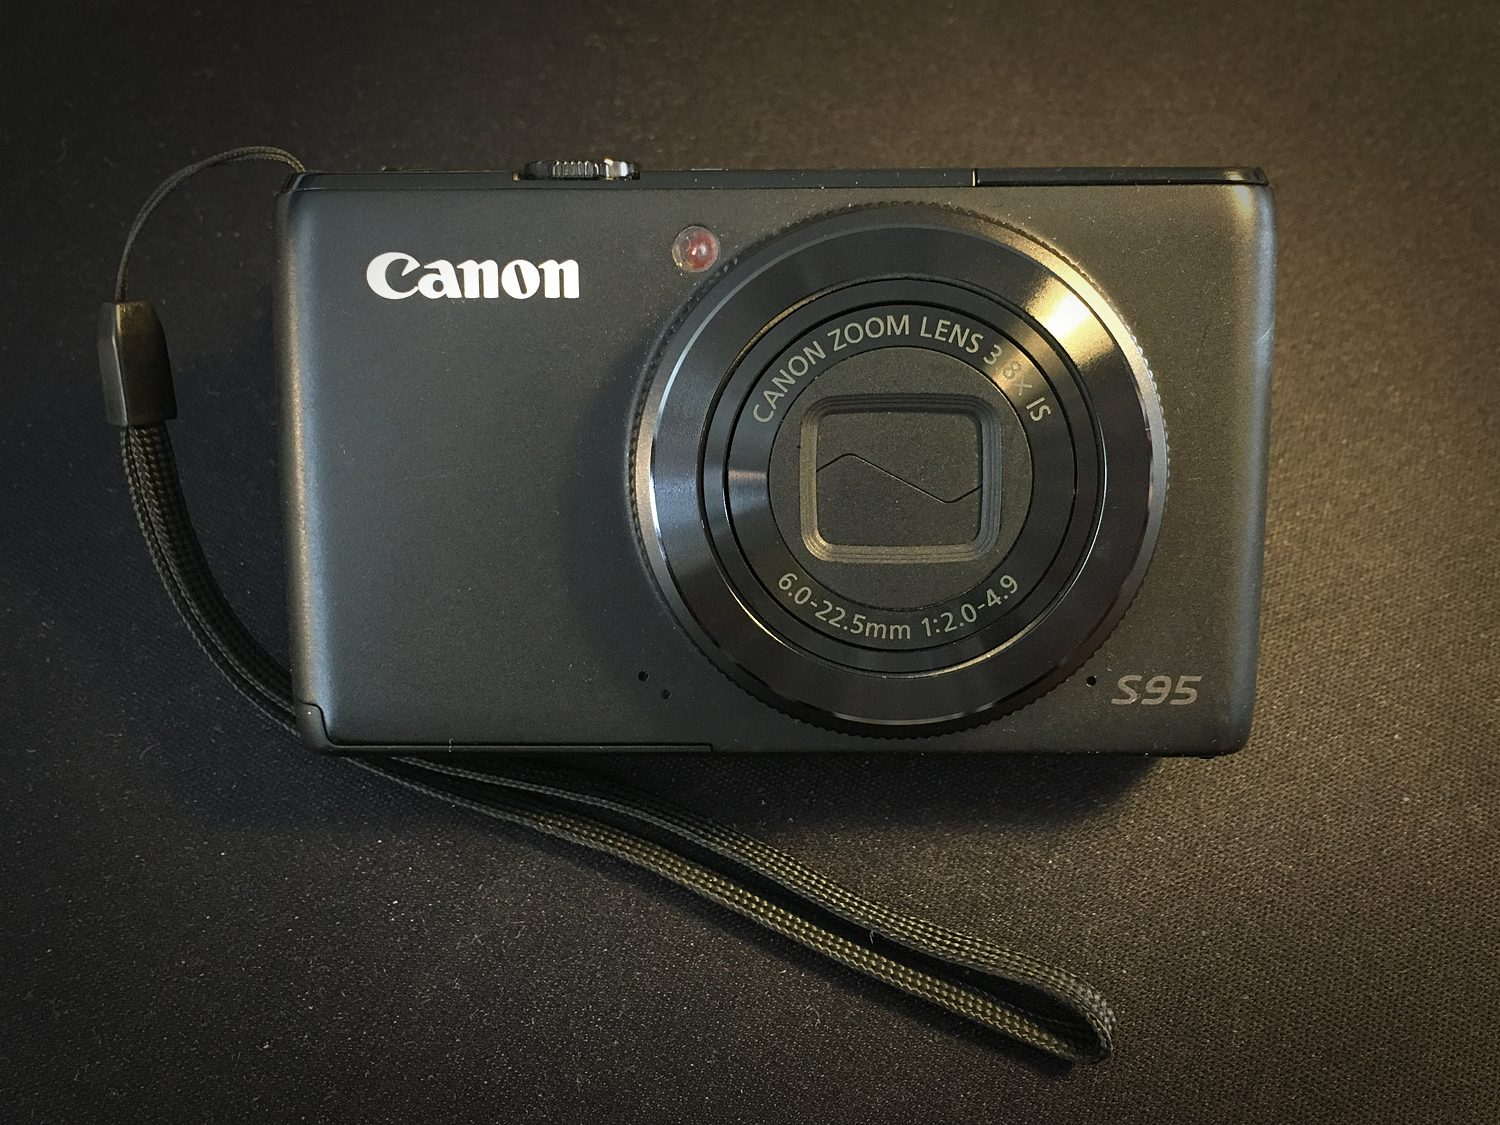 Canon Powershot S95 point and shoot